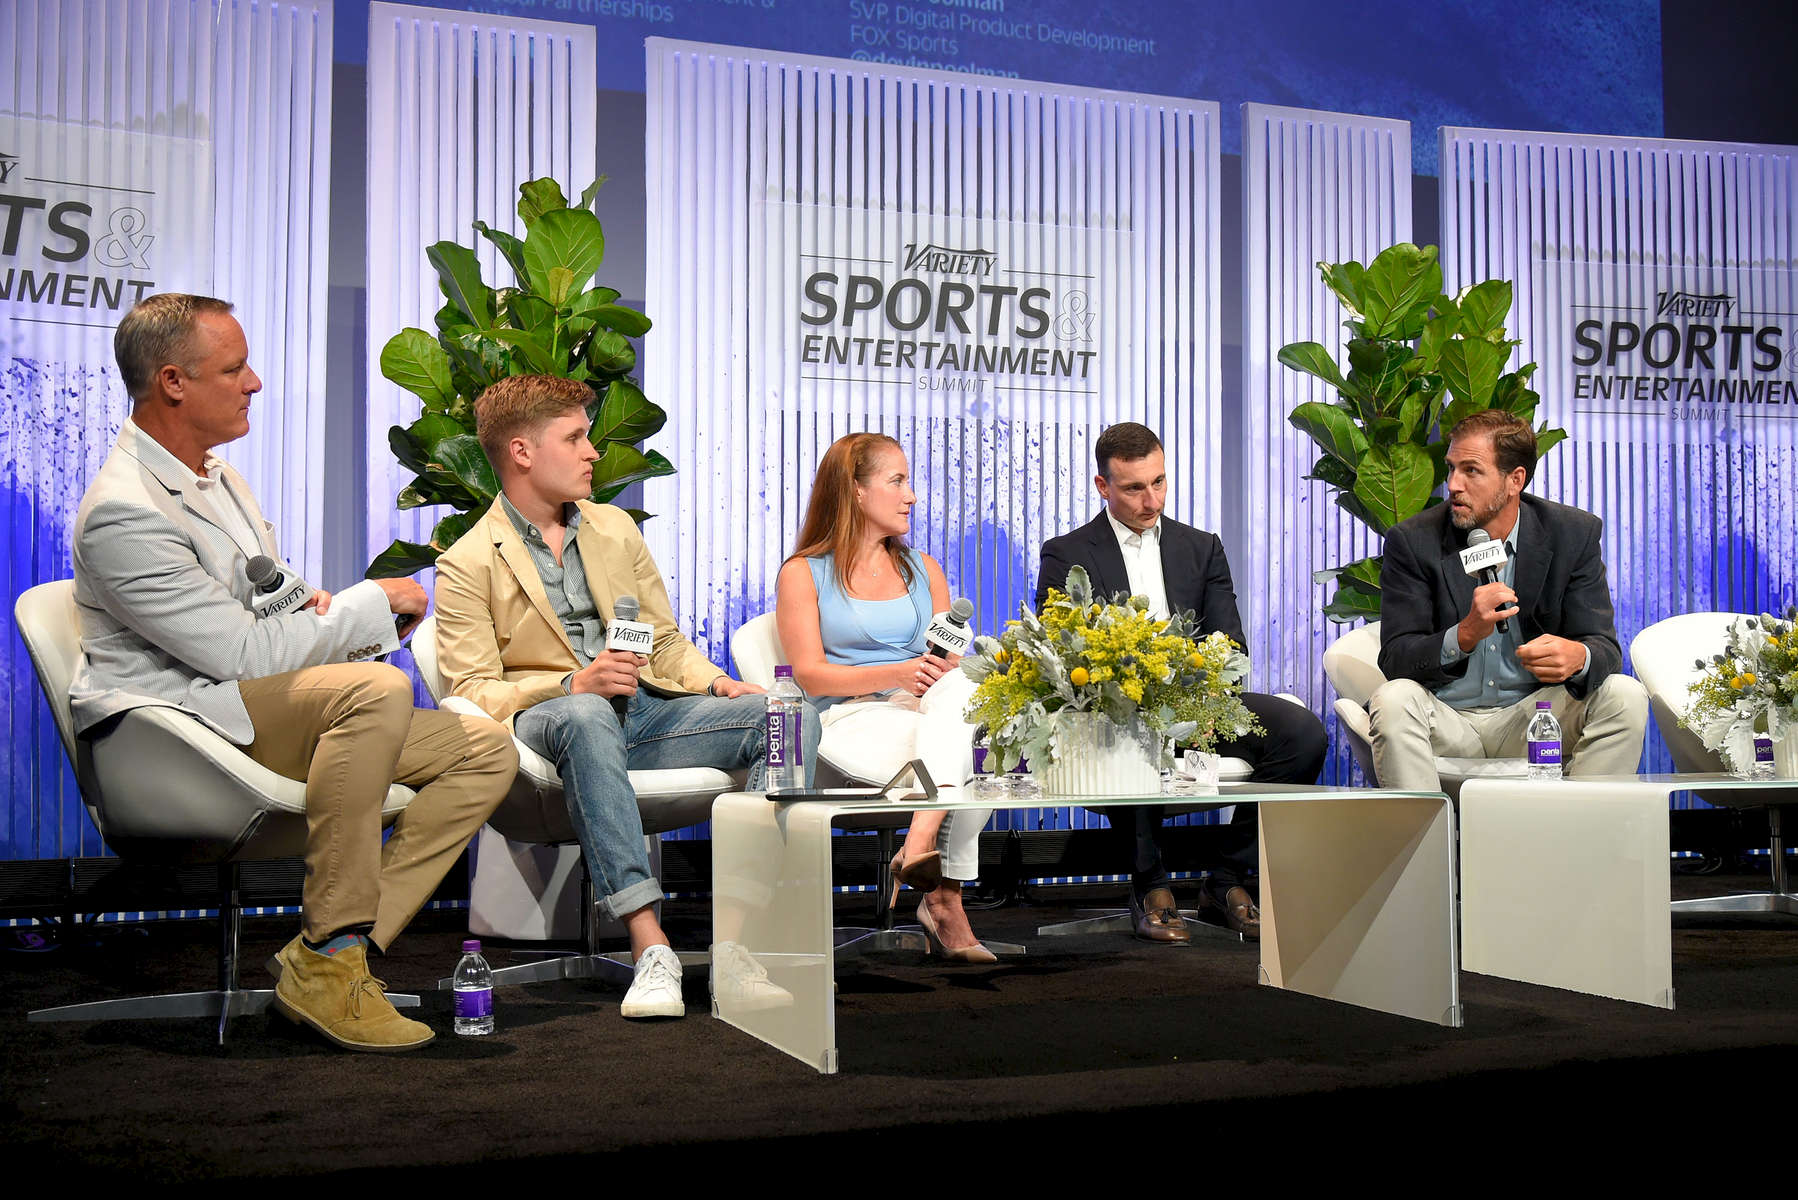 Mandatory Credit: Photo by Stewart Cook/Variety/REX/Shutterstock (8960146it)David Nugent, Michael Davis, Laura Froelich, David Lehanski and Devin PoolmanVariety Sports Entertainment Summit, Los Angeles, USA - 13 Jul 2017